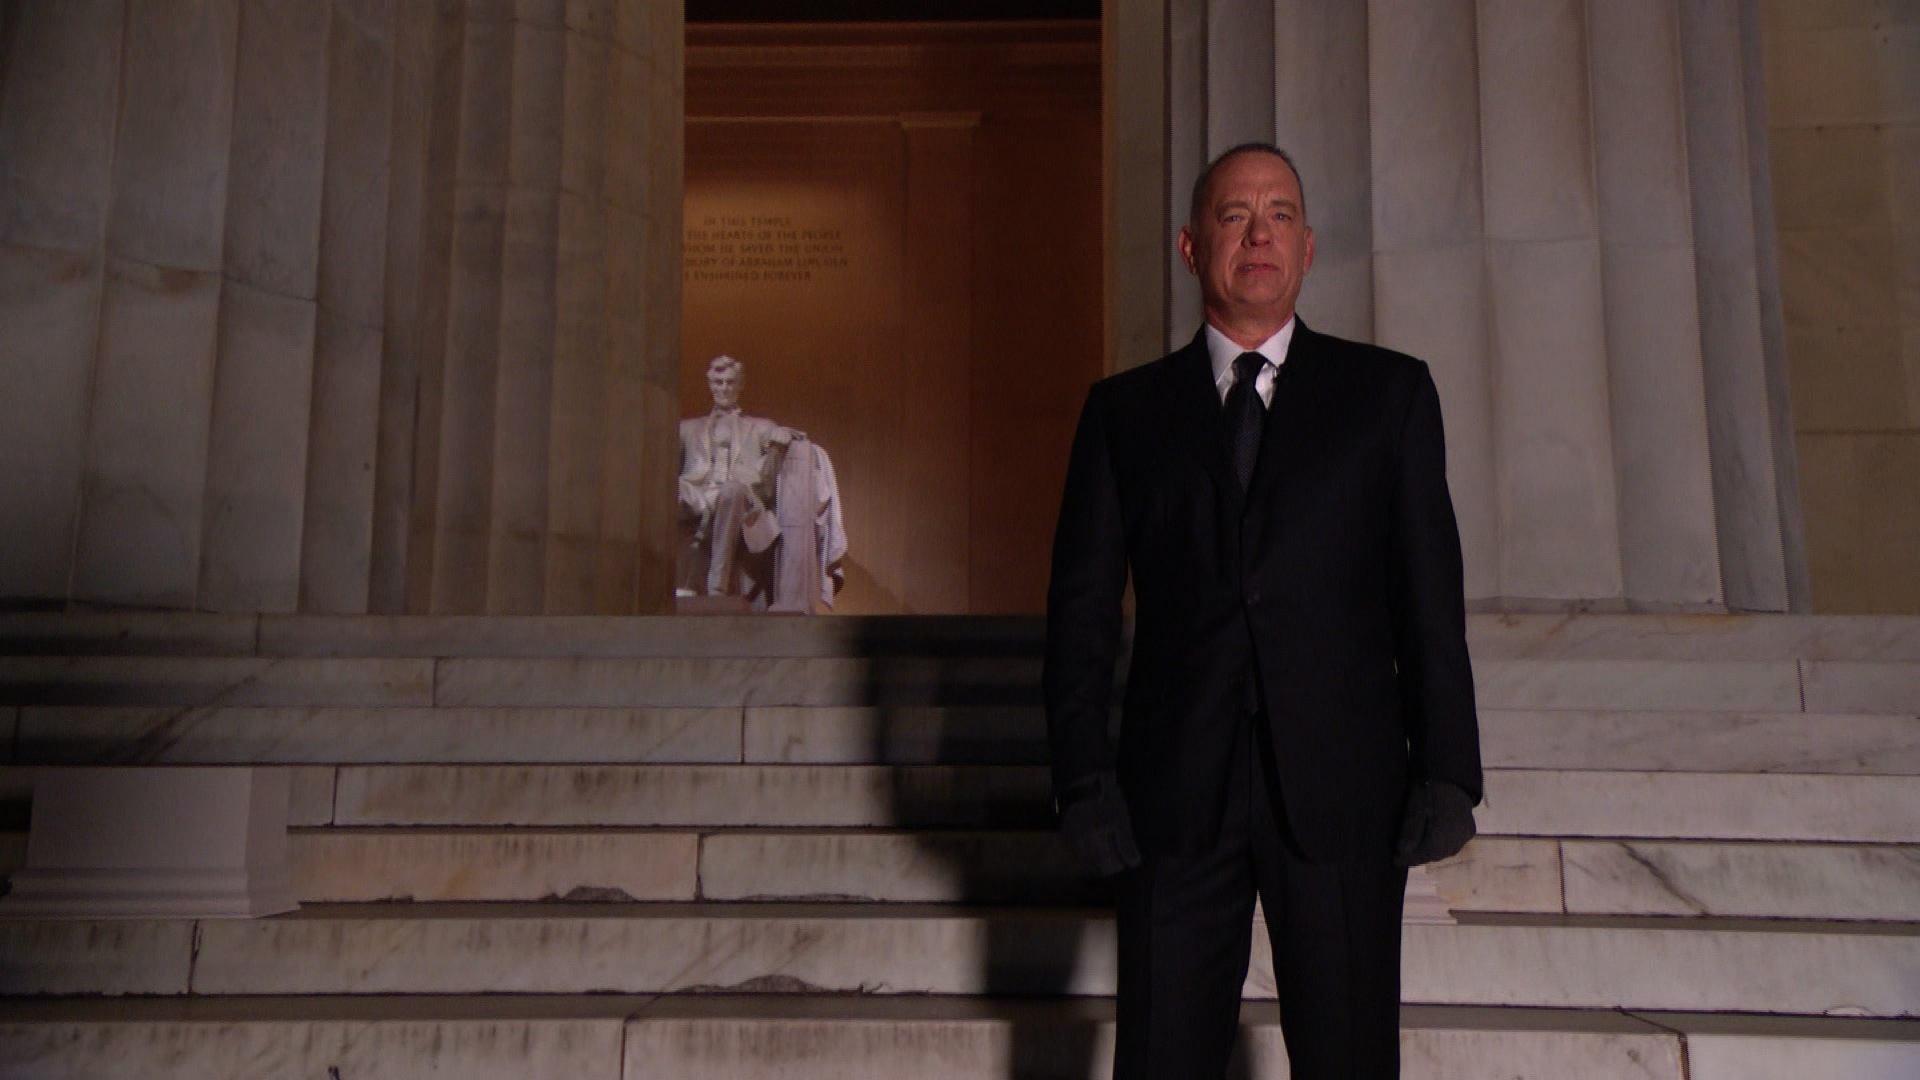 Tom Hanks hosts the Celebrate America concert spcial at the Lincoln Memorial in Washington on Wednesday, January 20.